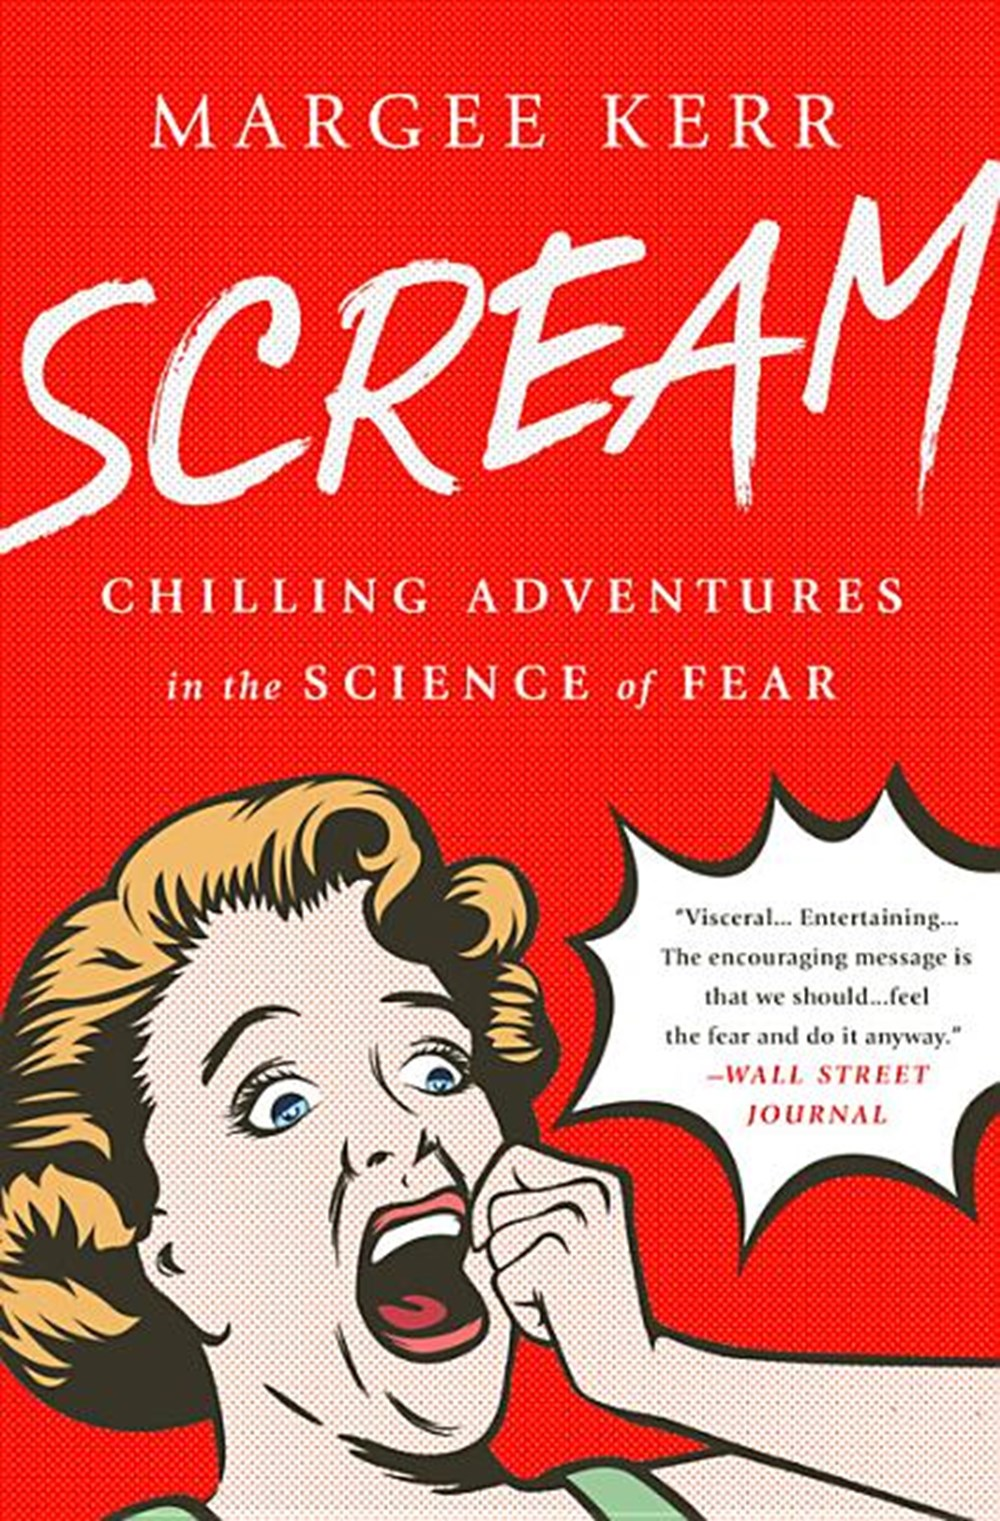 Scream Chilling Adventures in the Science of Fear